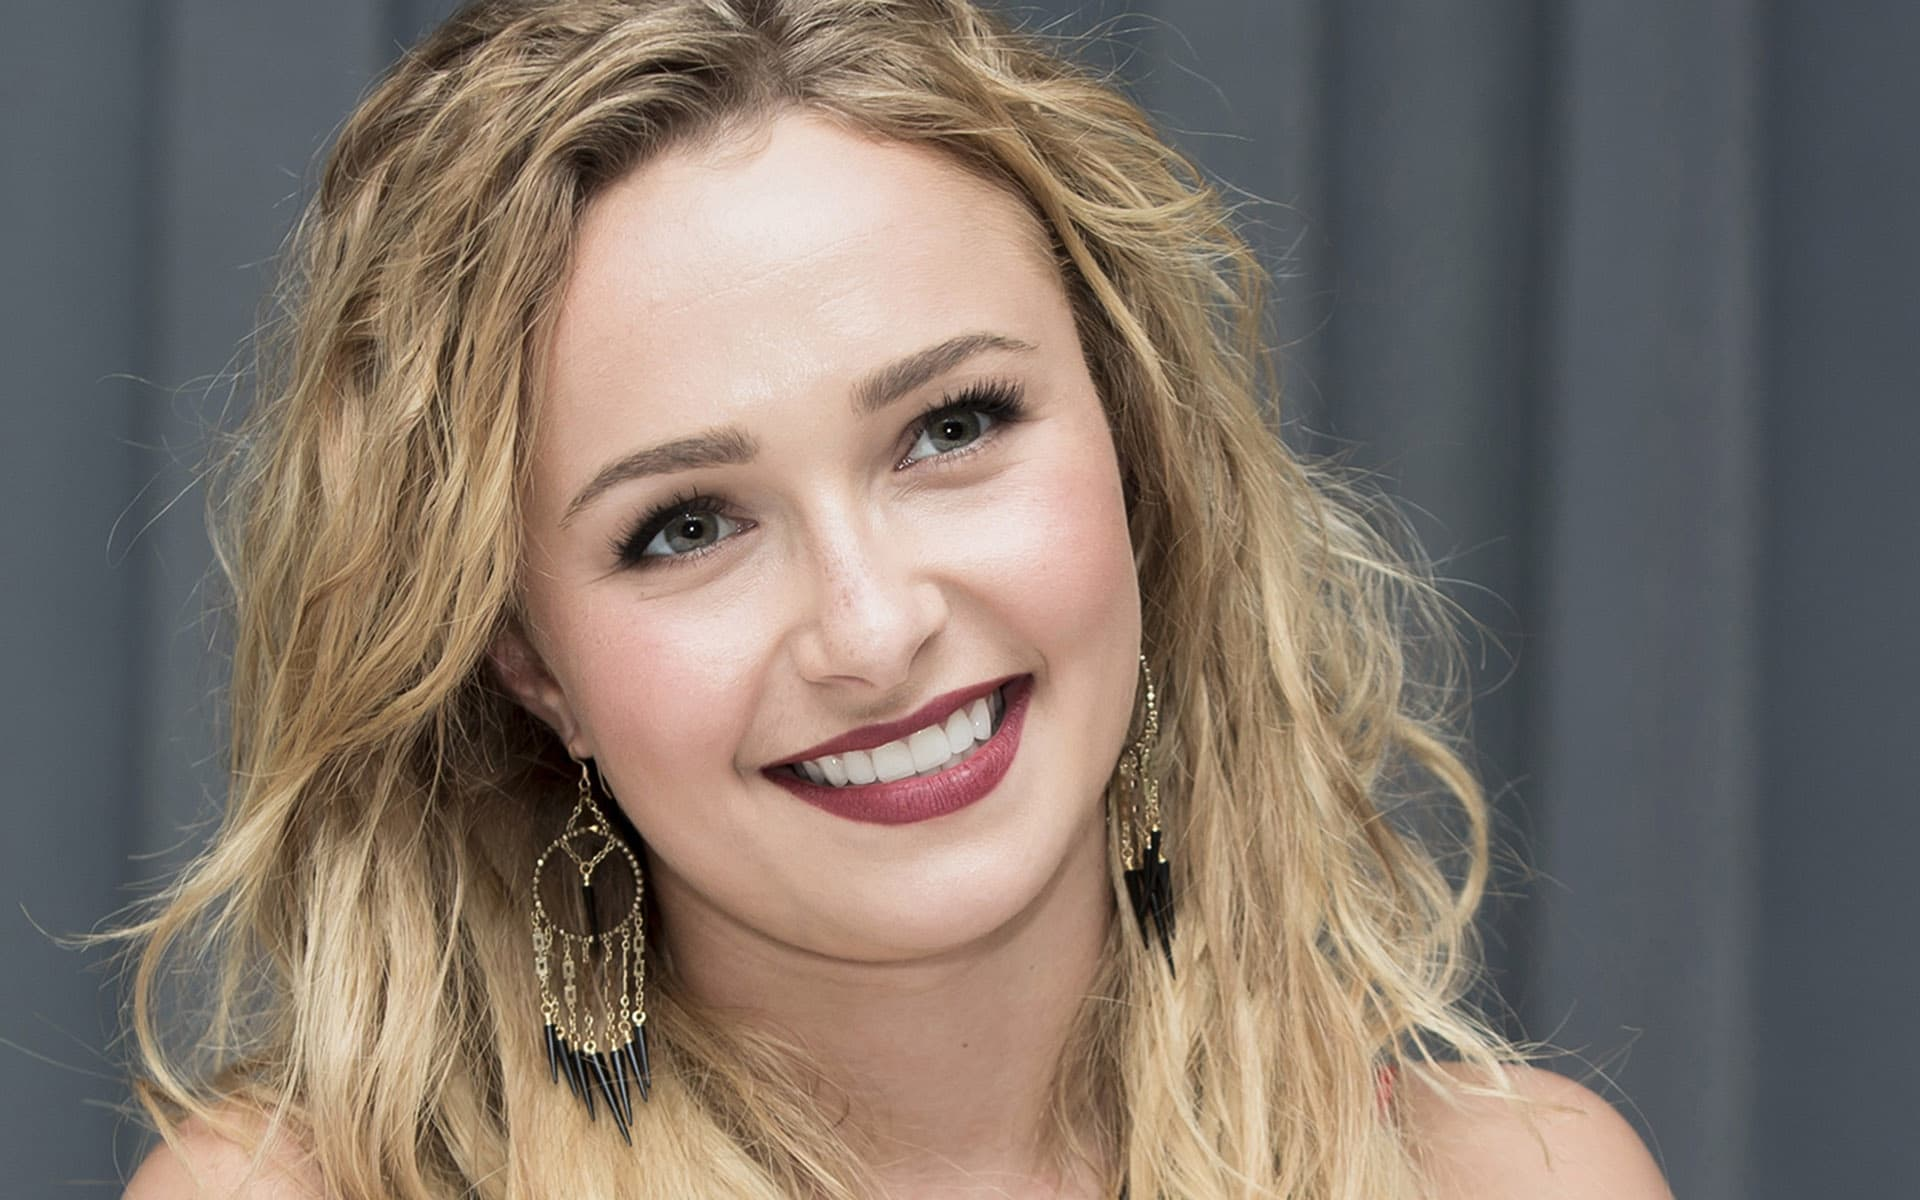 Hayden Leslie Panettiere recent photo, Earrings , smile